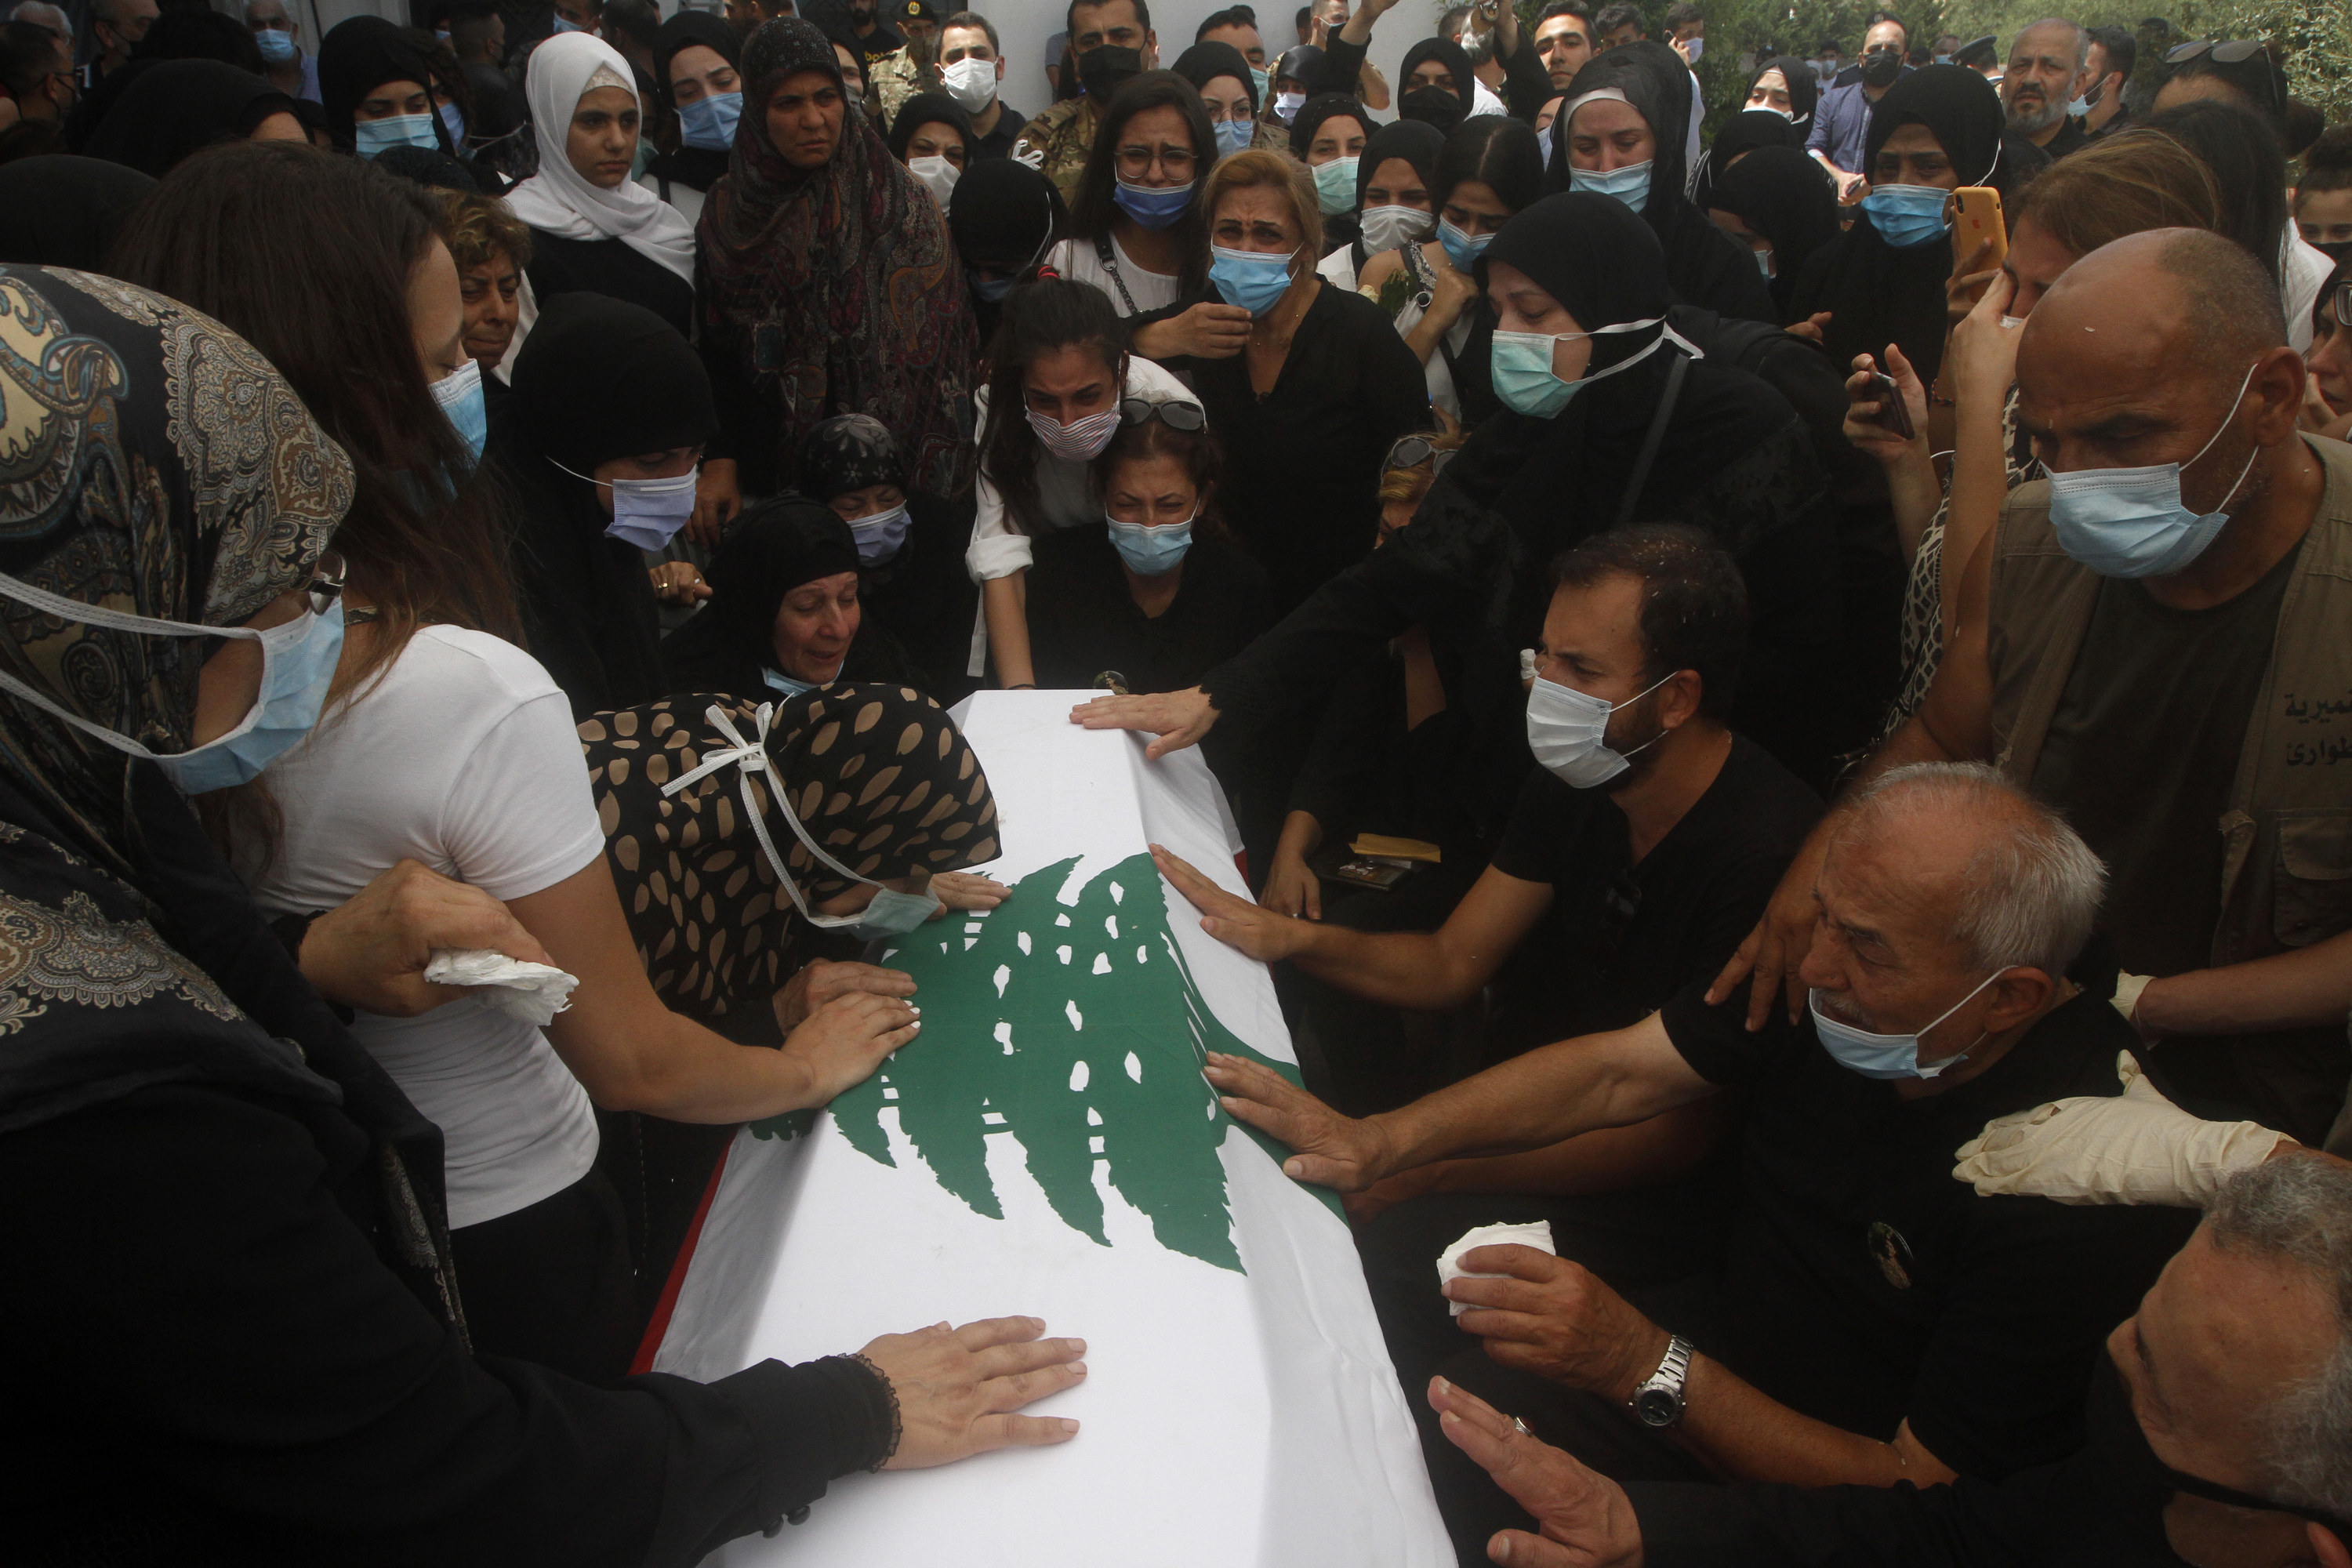 A crowd of people in black wearing masks touch a coffin covered in the Lebanese flag